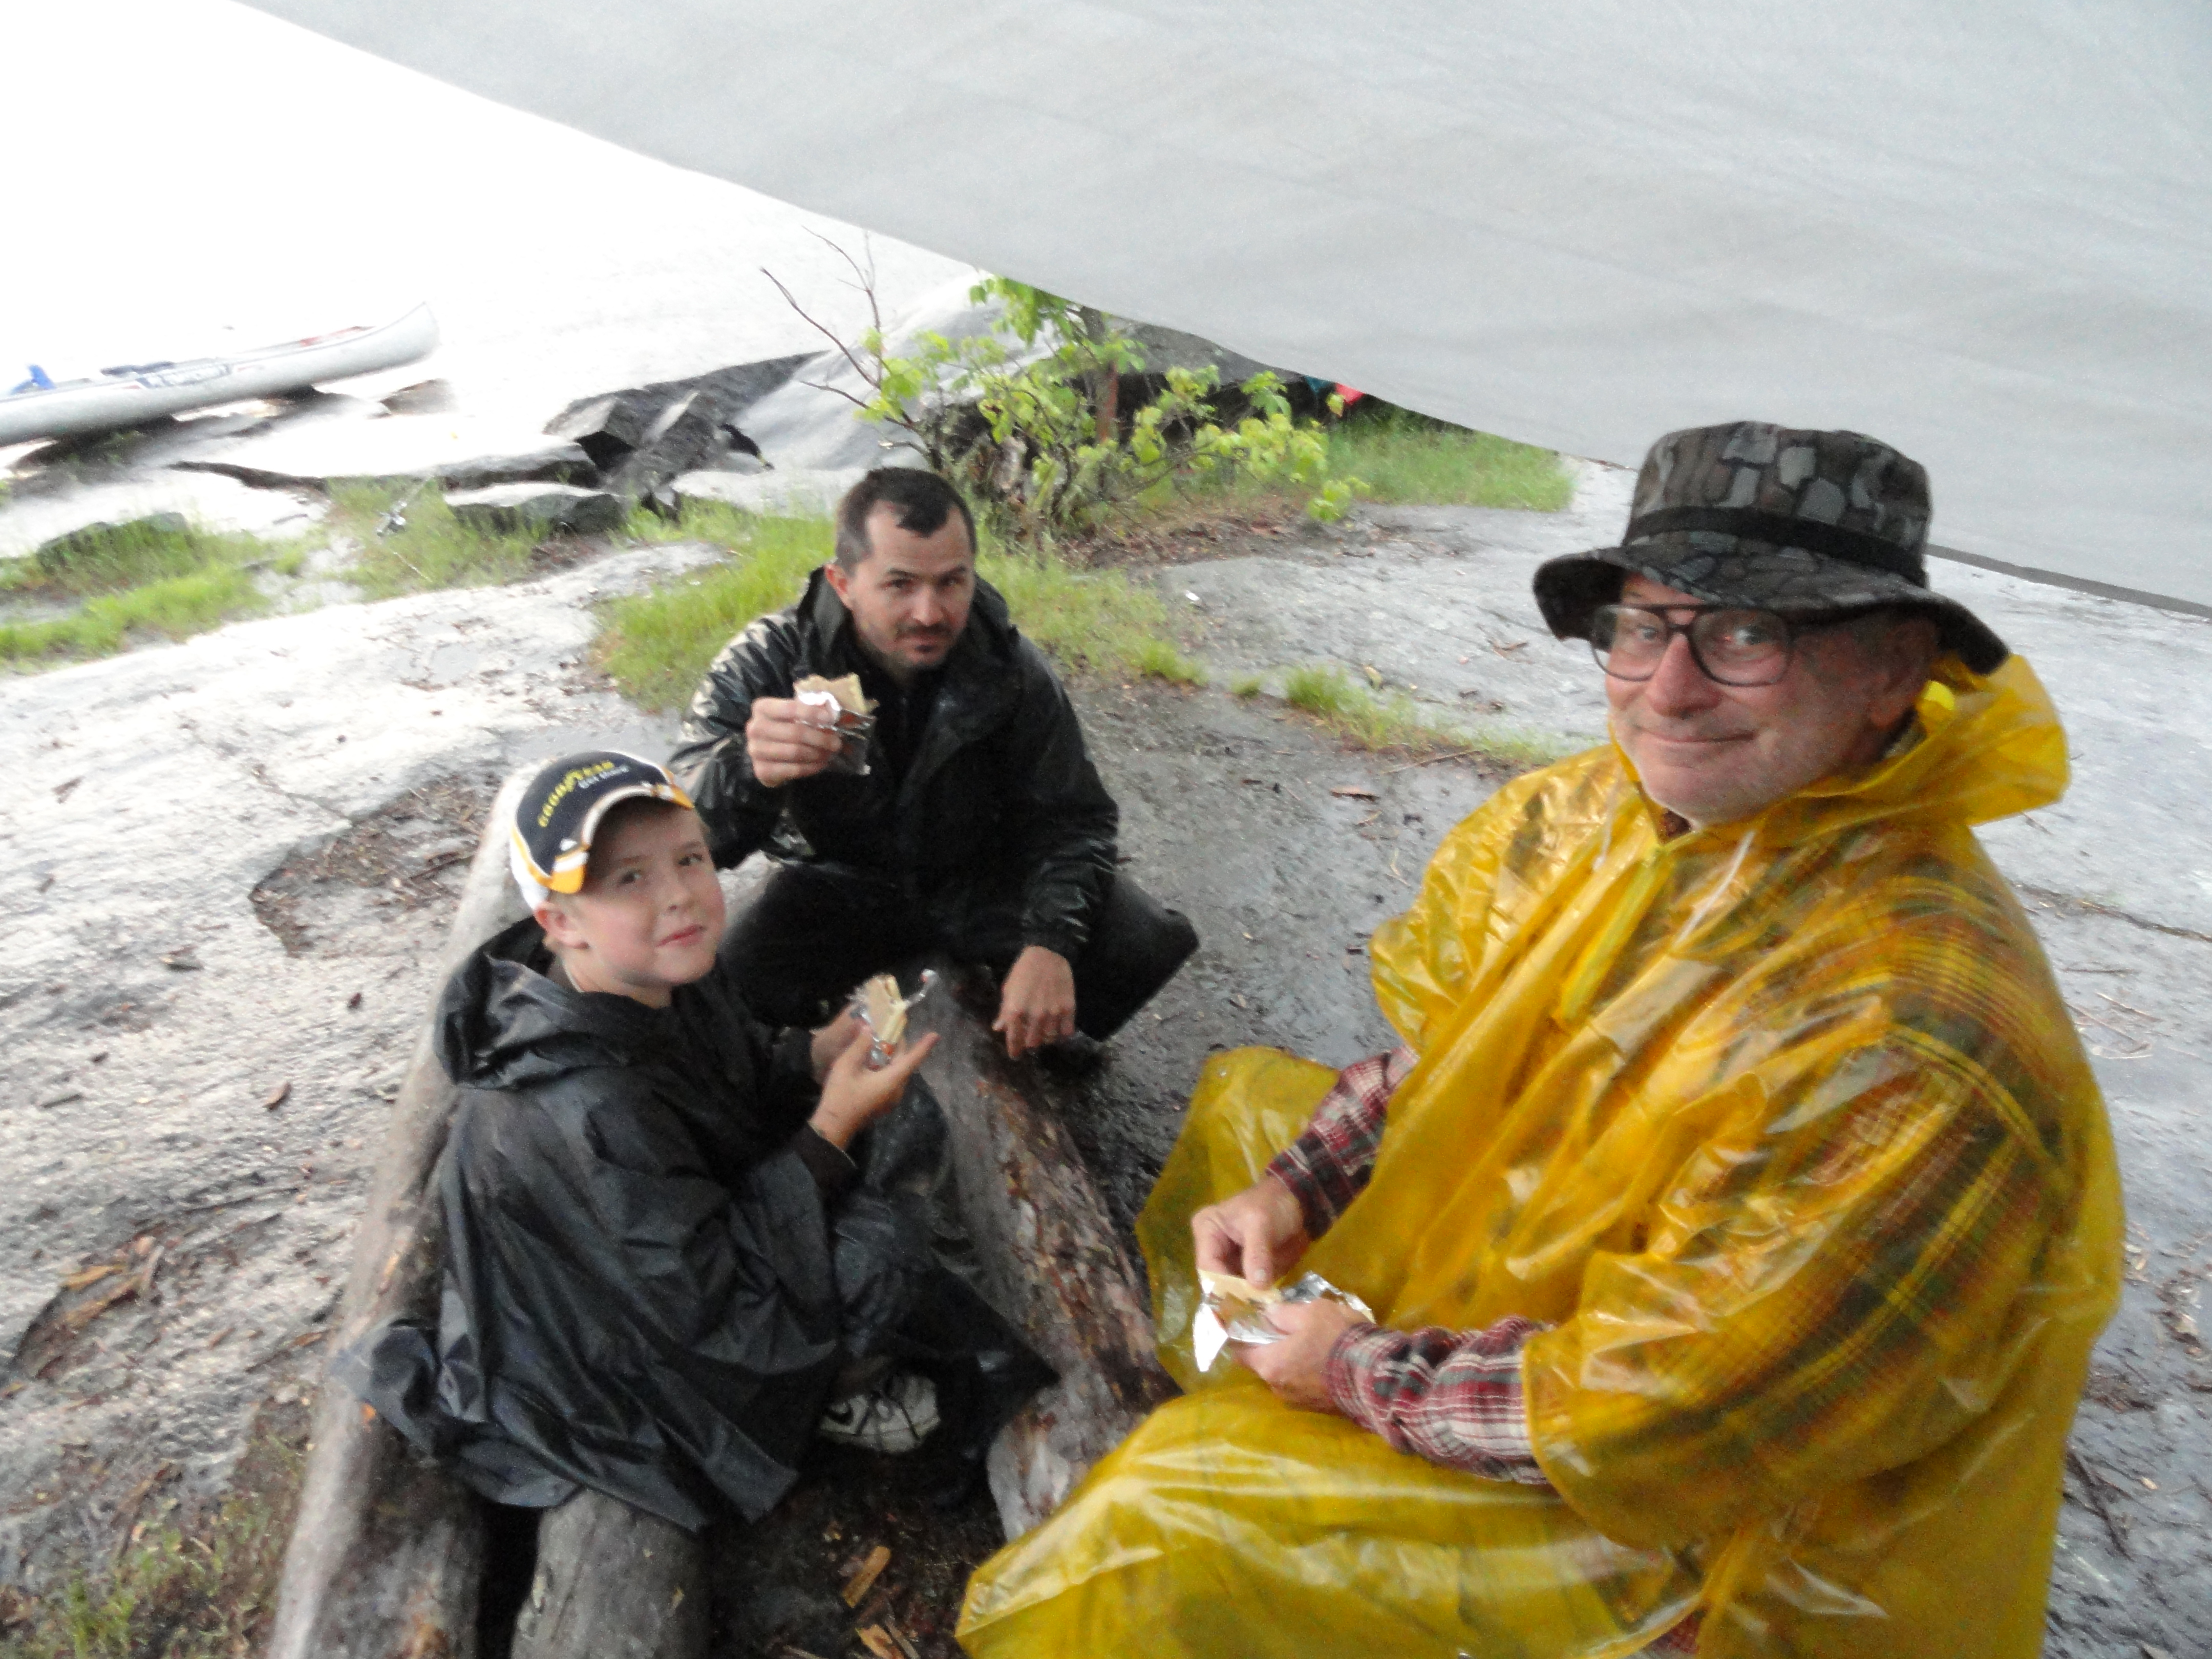 2011 Jetton Fishing Trip – Boundary Waters Day 2